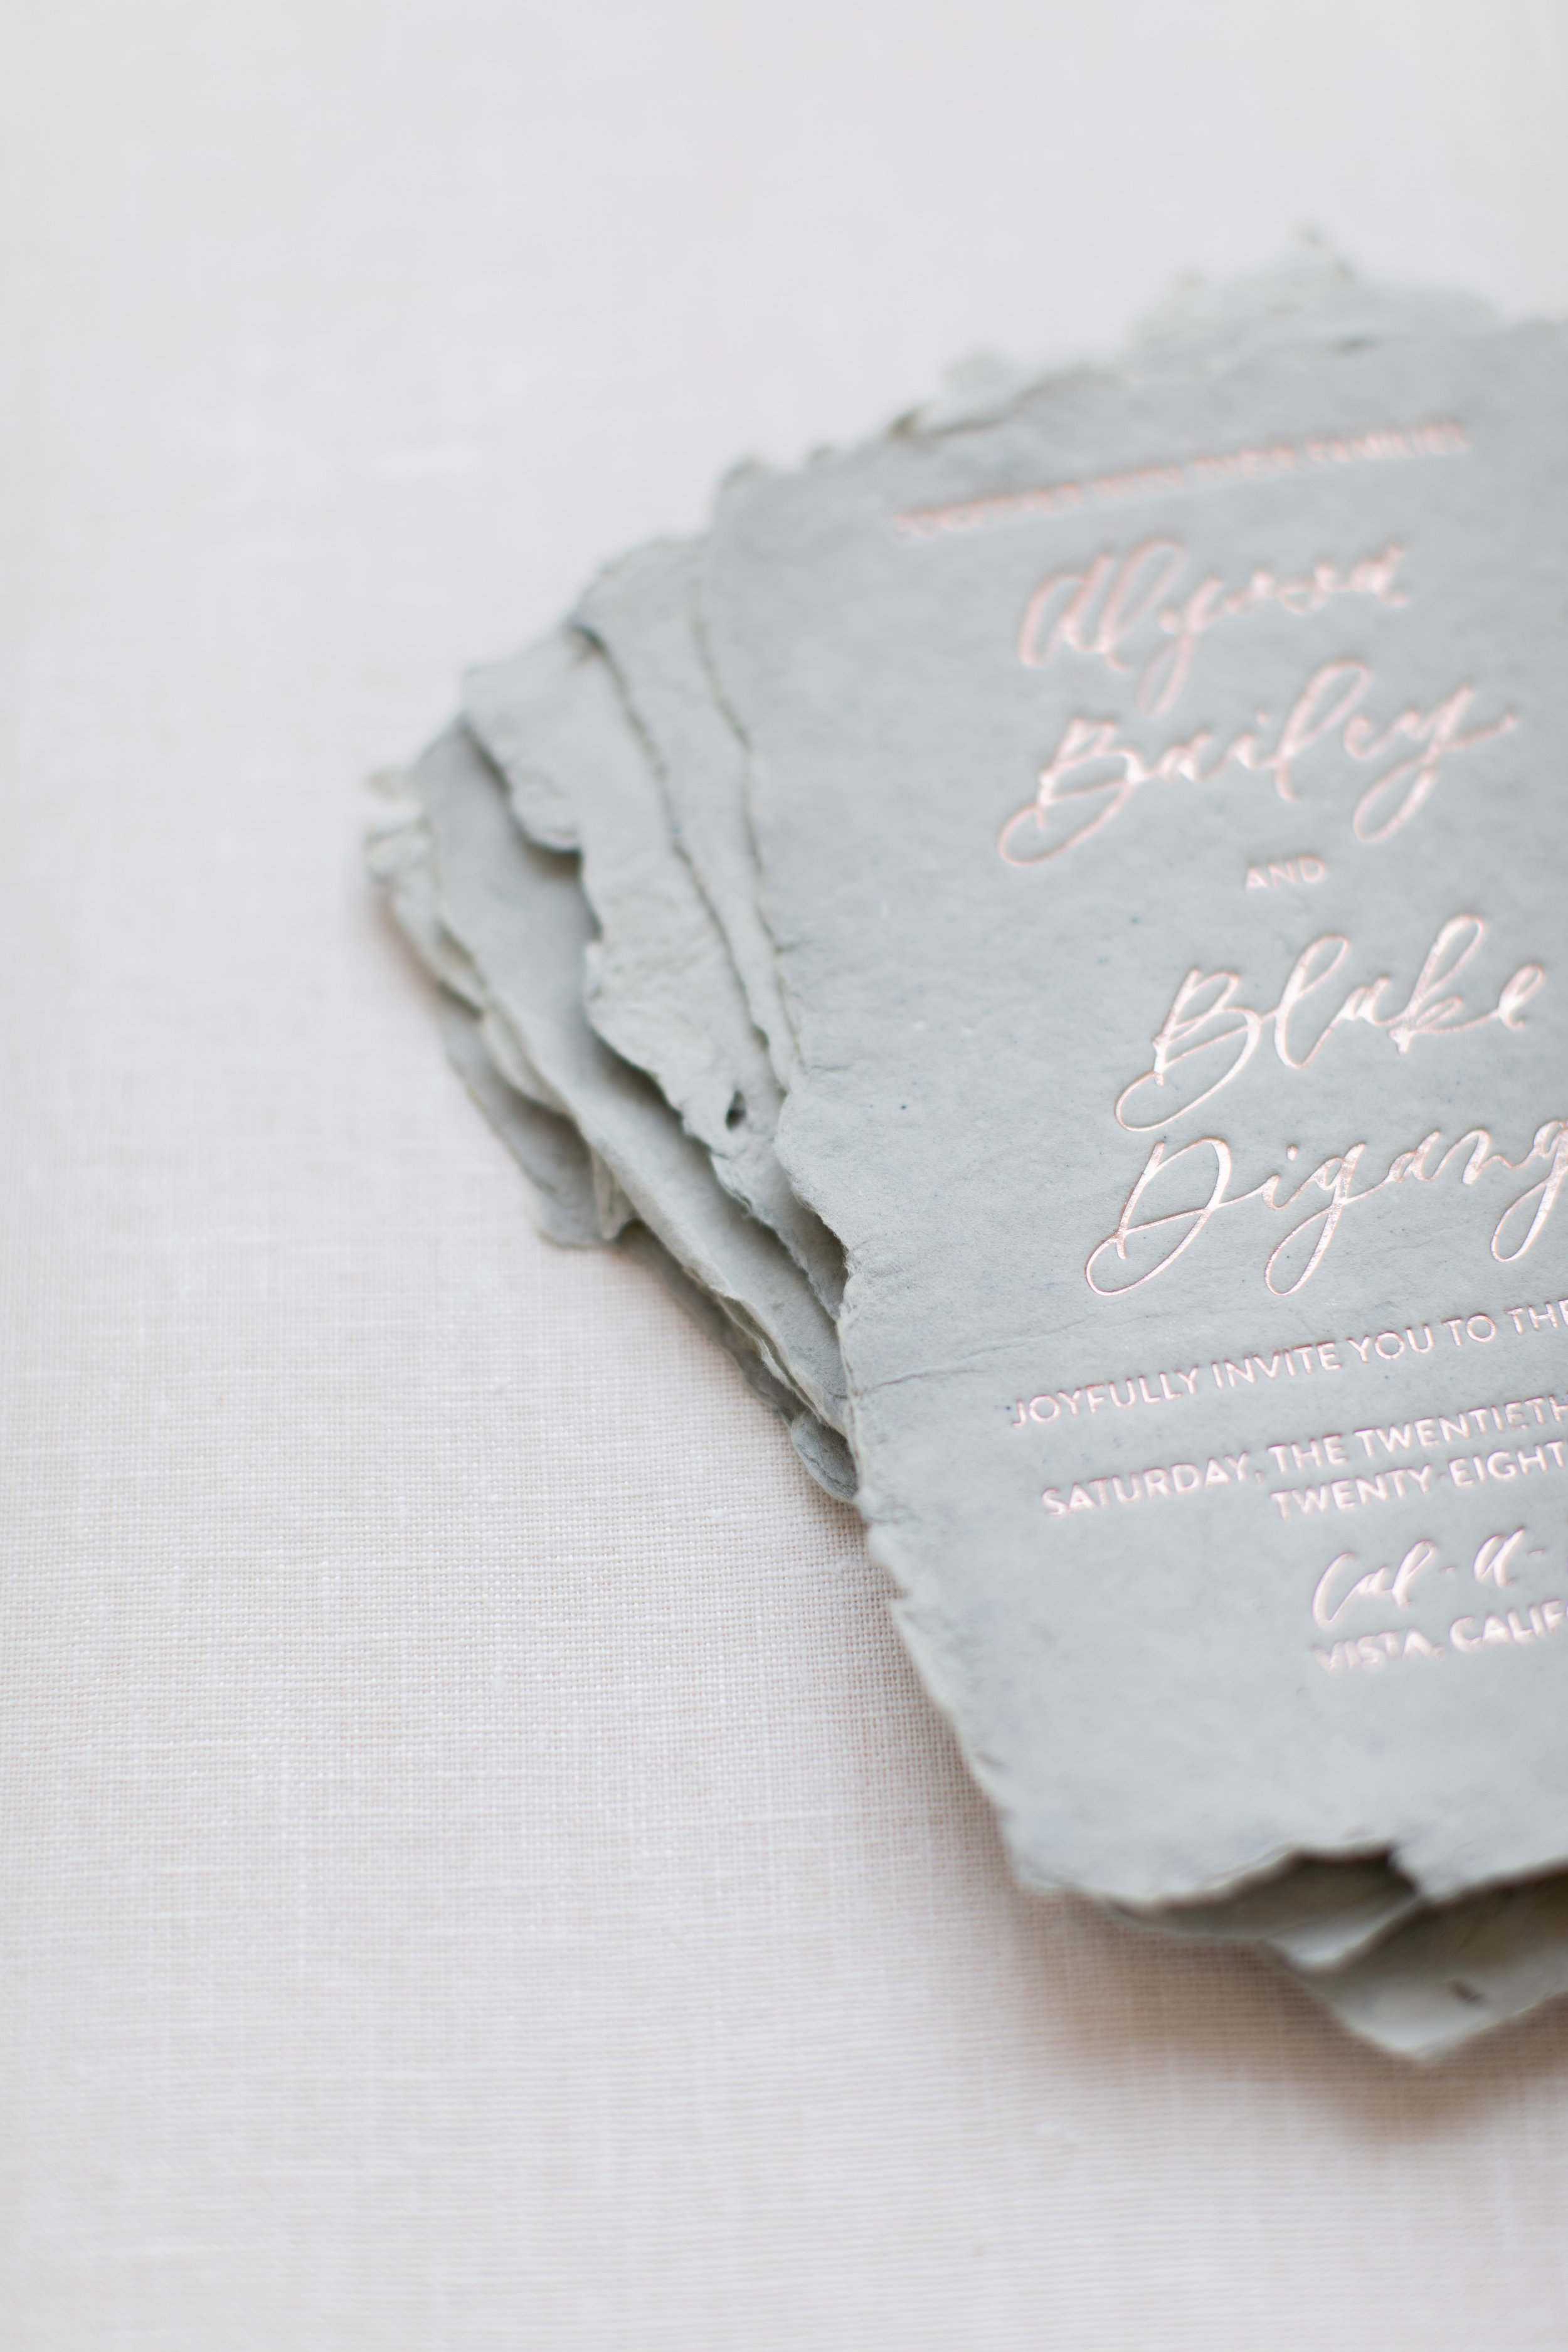 Handmade paper invitations with deckled edge